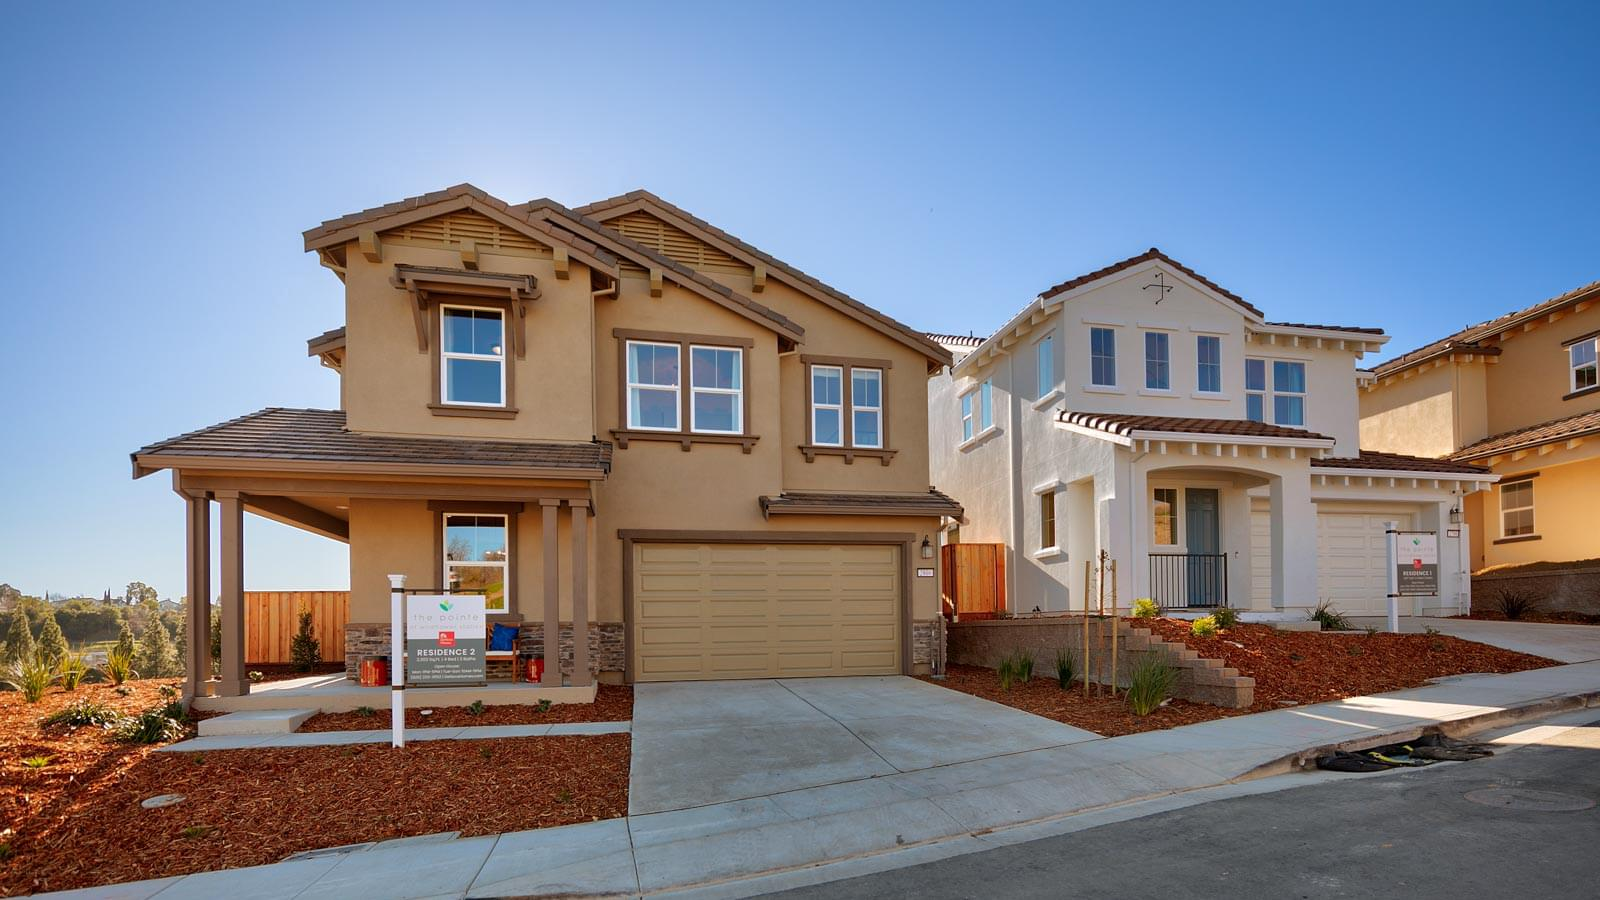 The Pointe at Wildflower Station - A DeNova Homes Community in Antioch, CA